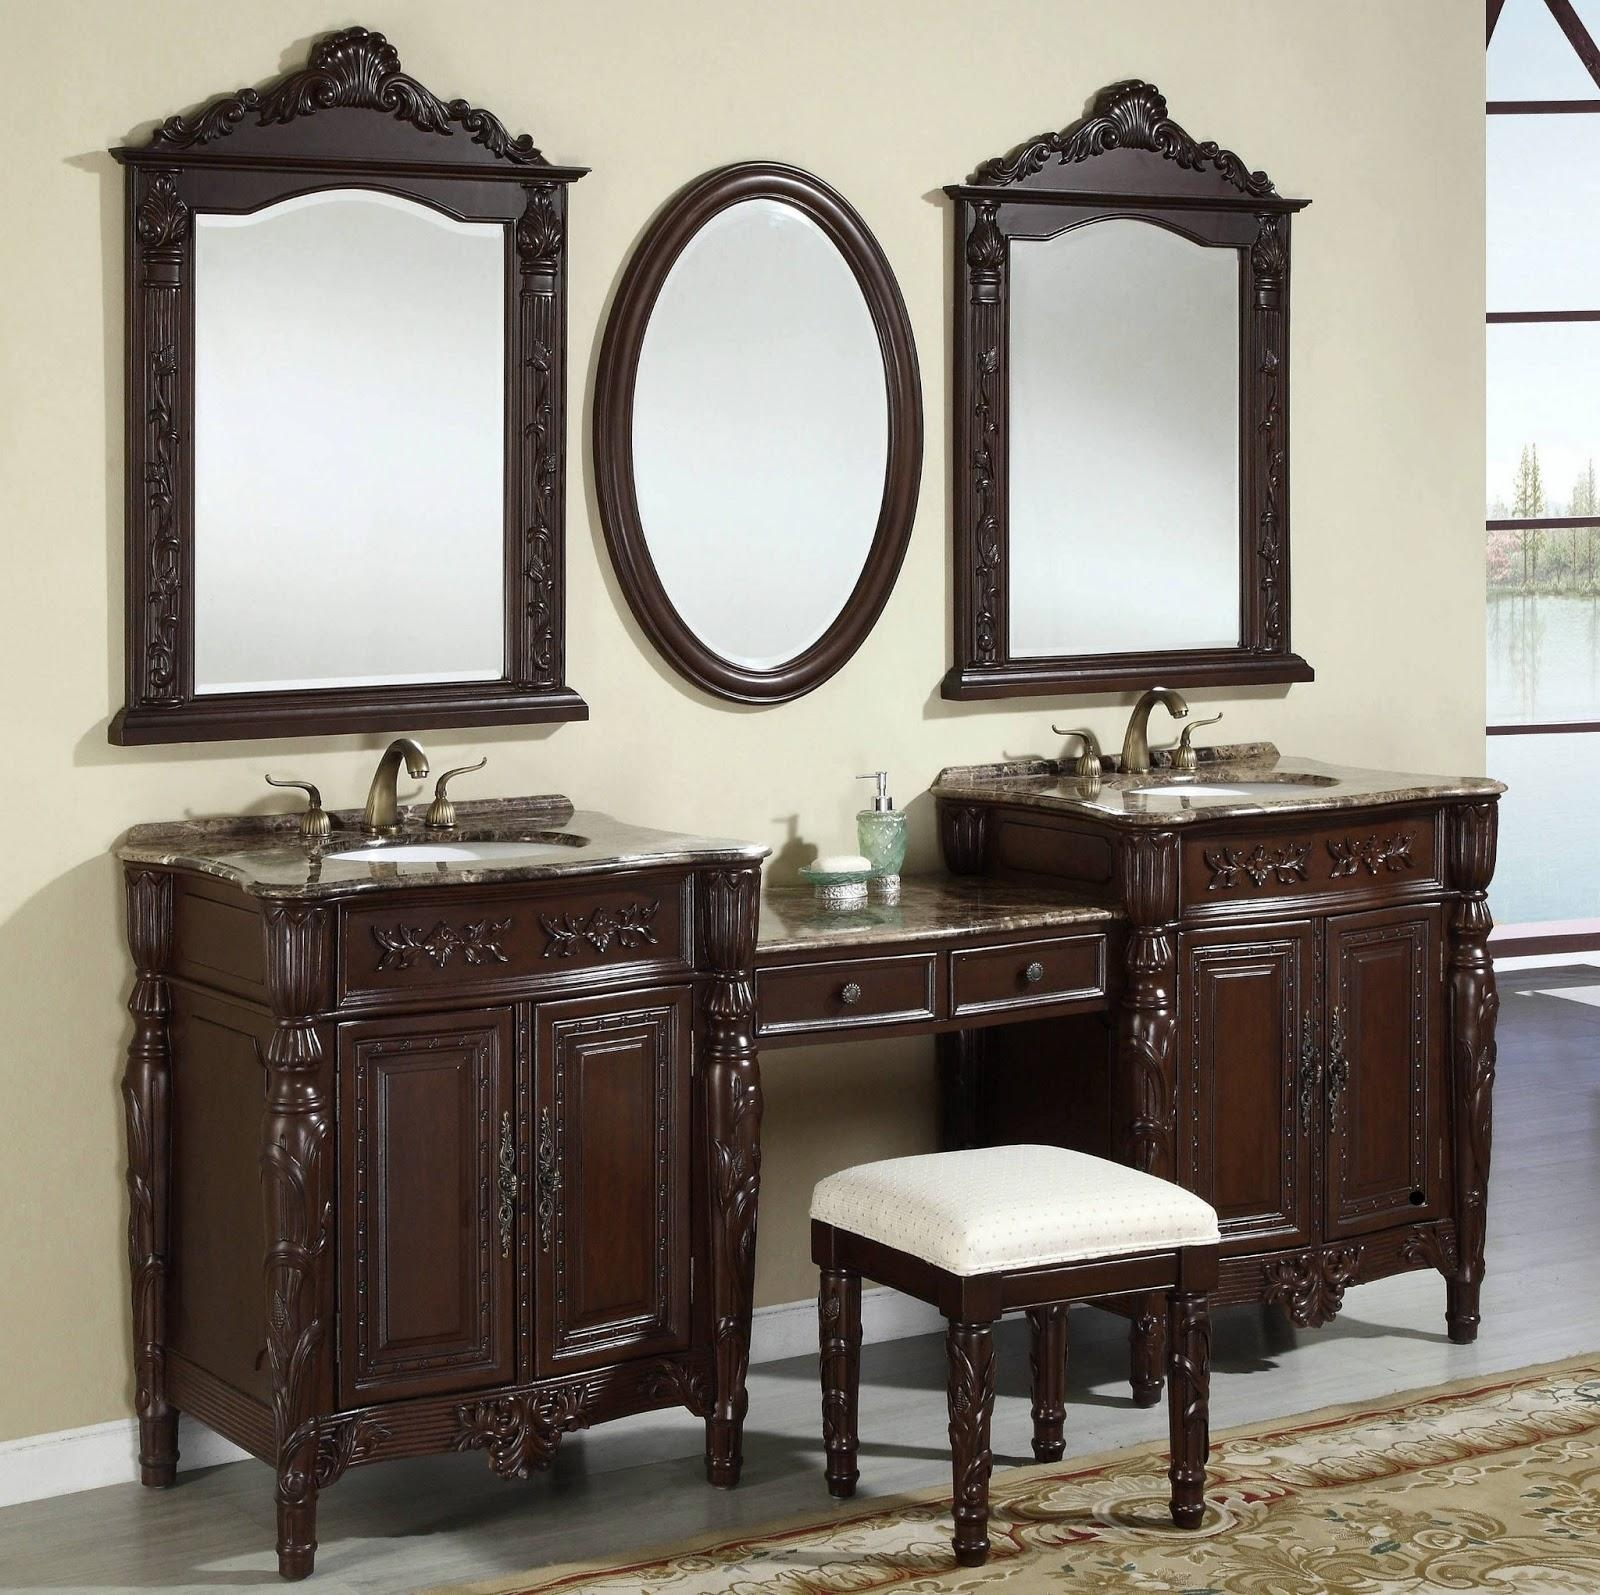 Fresh Bathroom Vanity Mirrors Canada #15153 Throughout Decorative Mirrors For Bathroom Vanity (View 6 of 20)